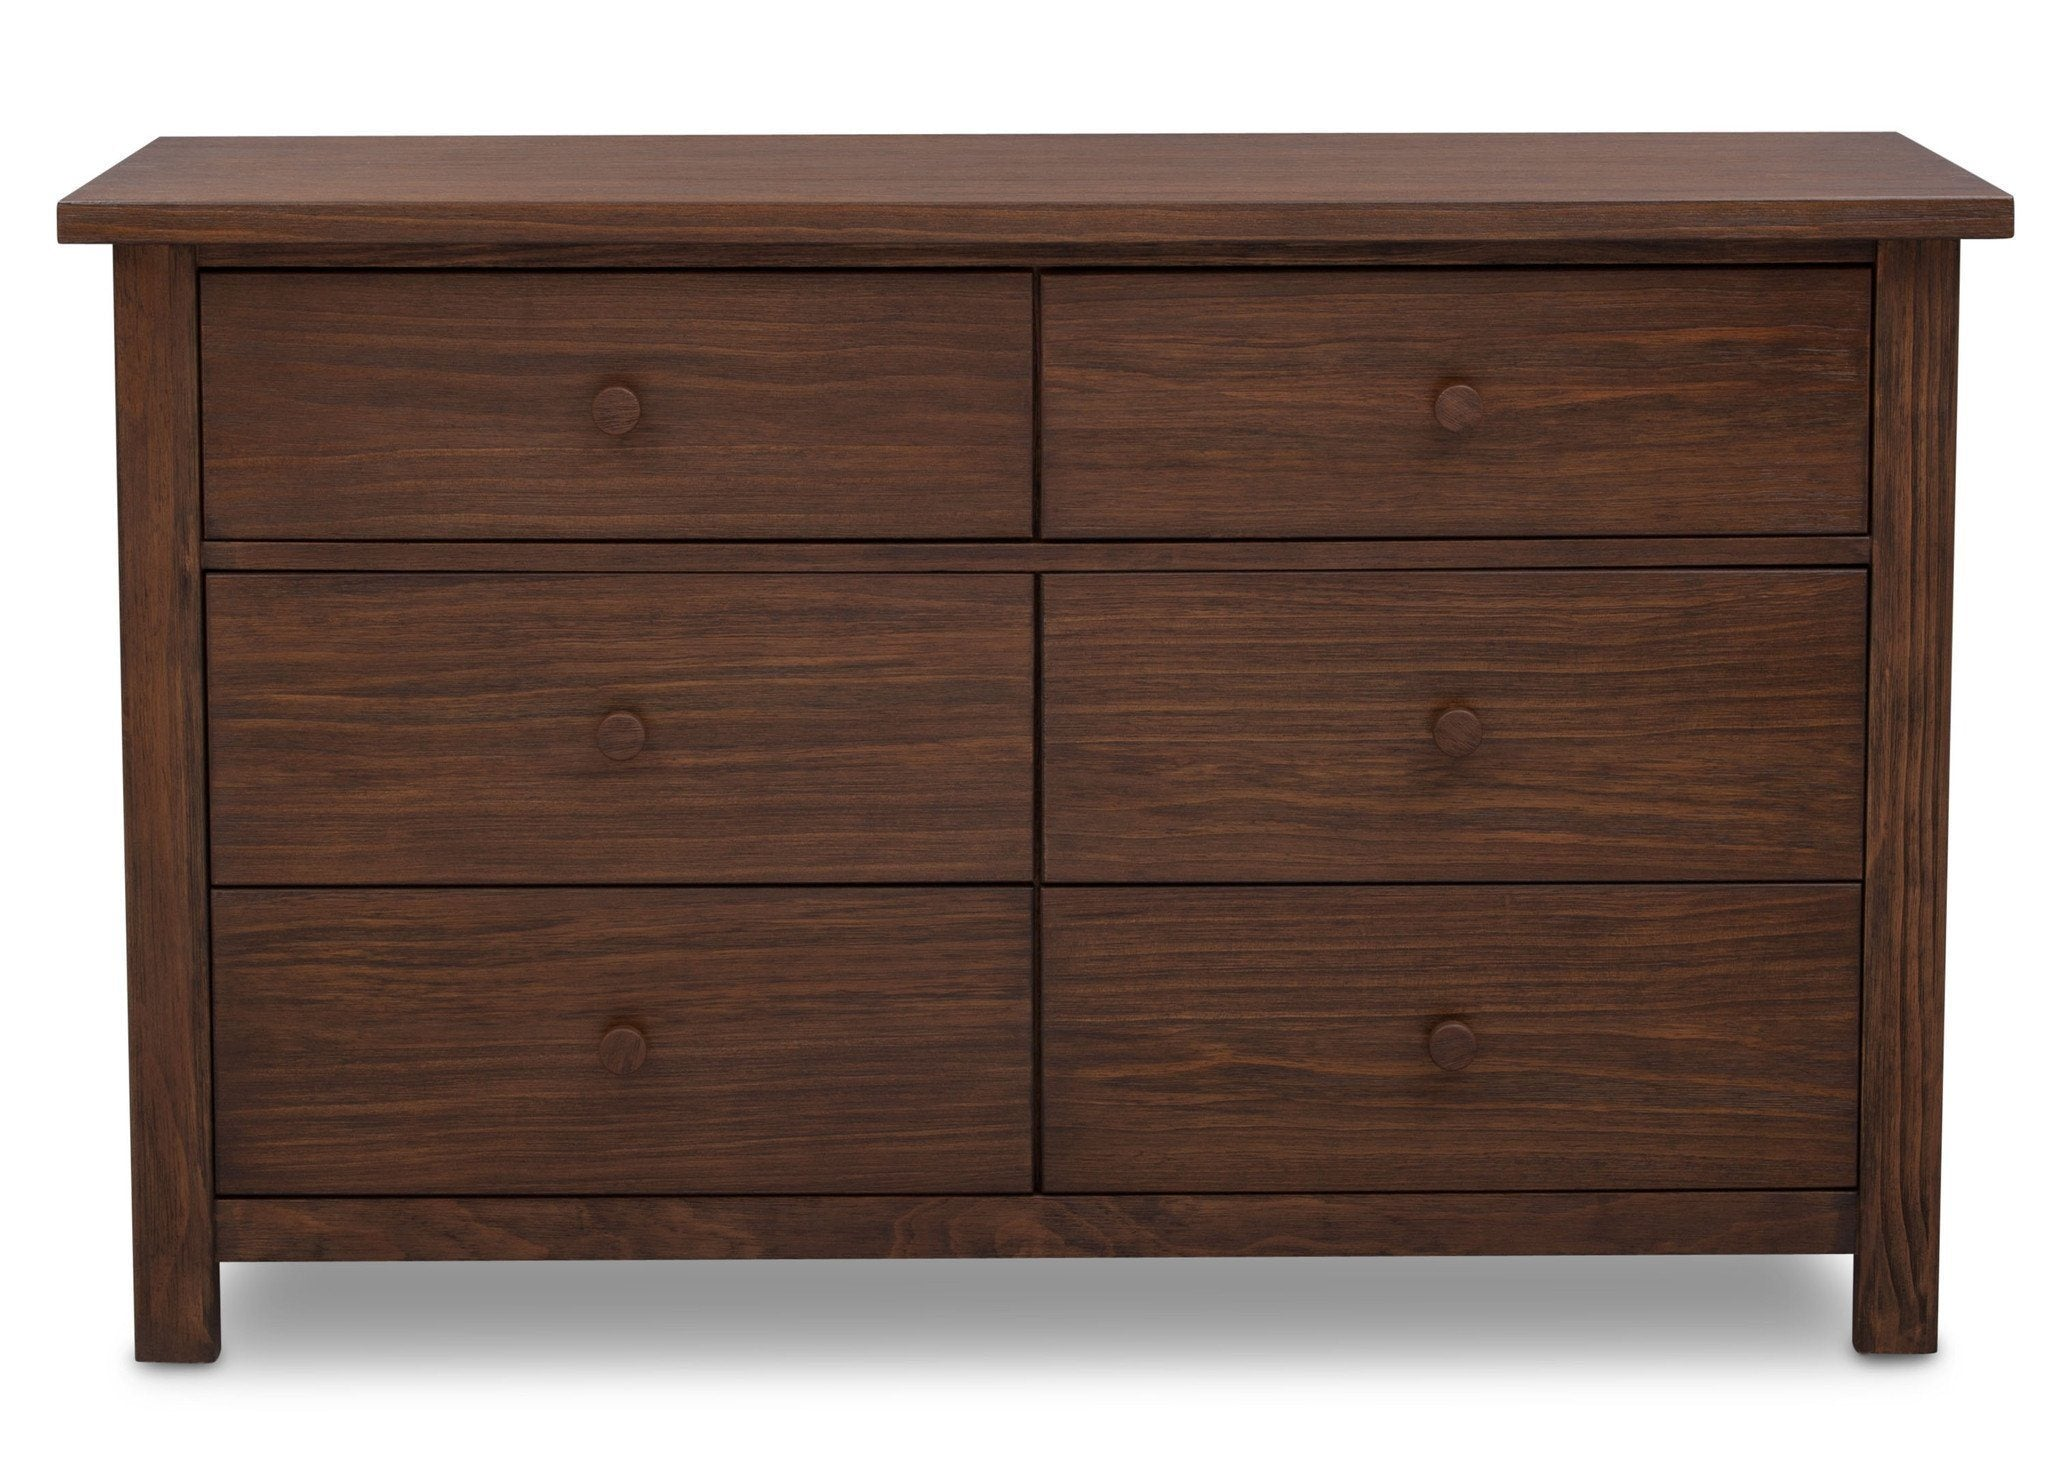 Serta Rustic Oak (229) Northbrook 6 Drawer Dresser, Front View b1b